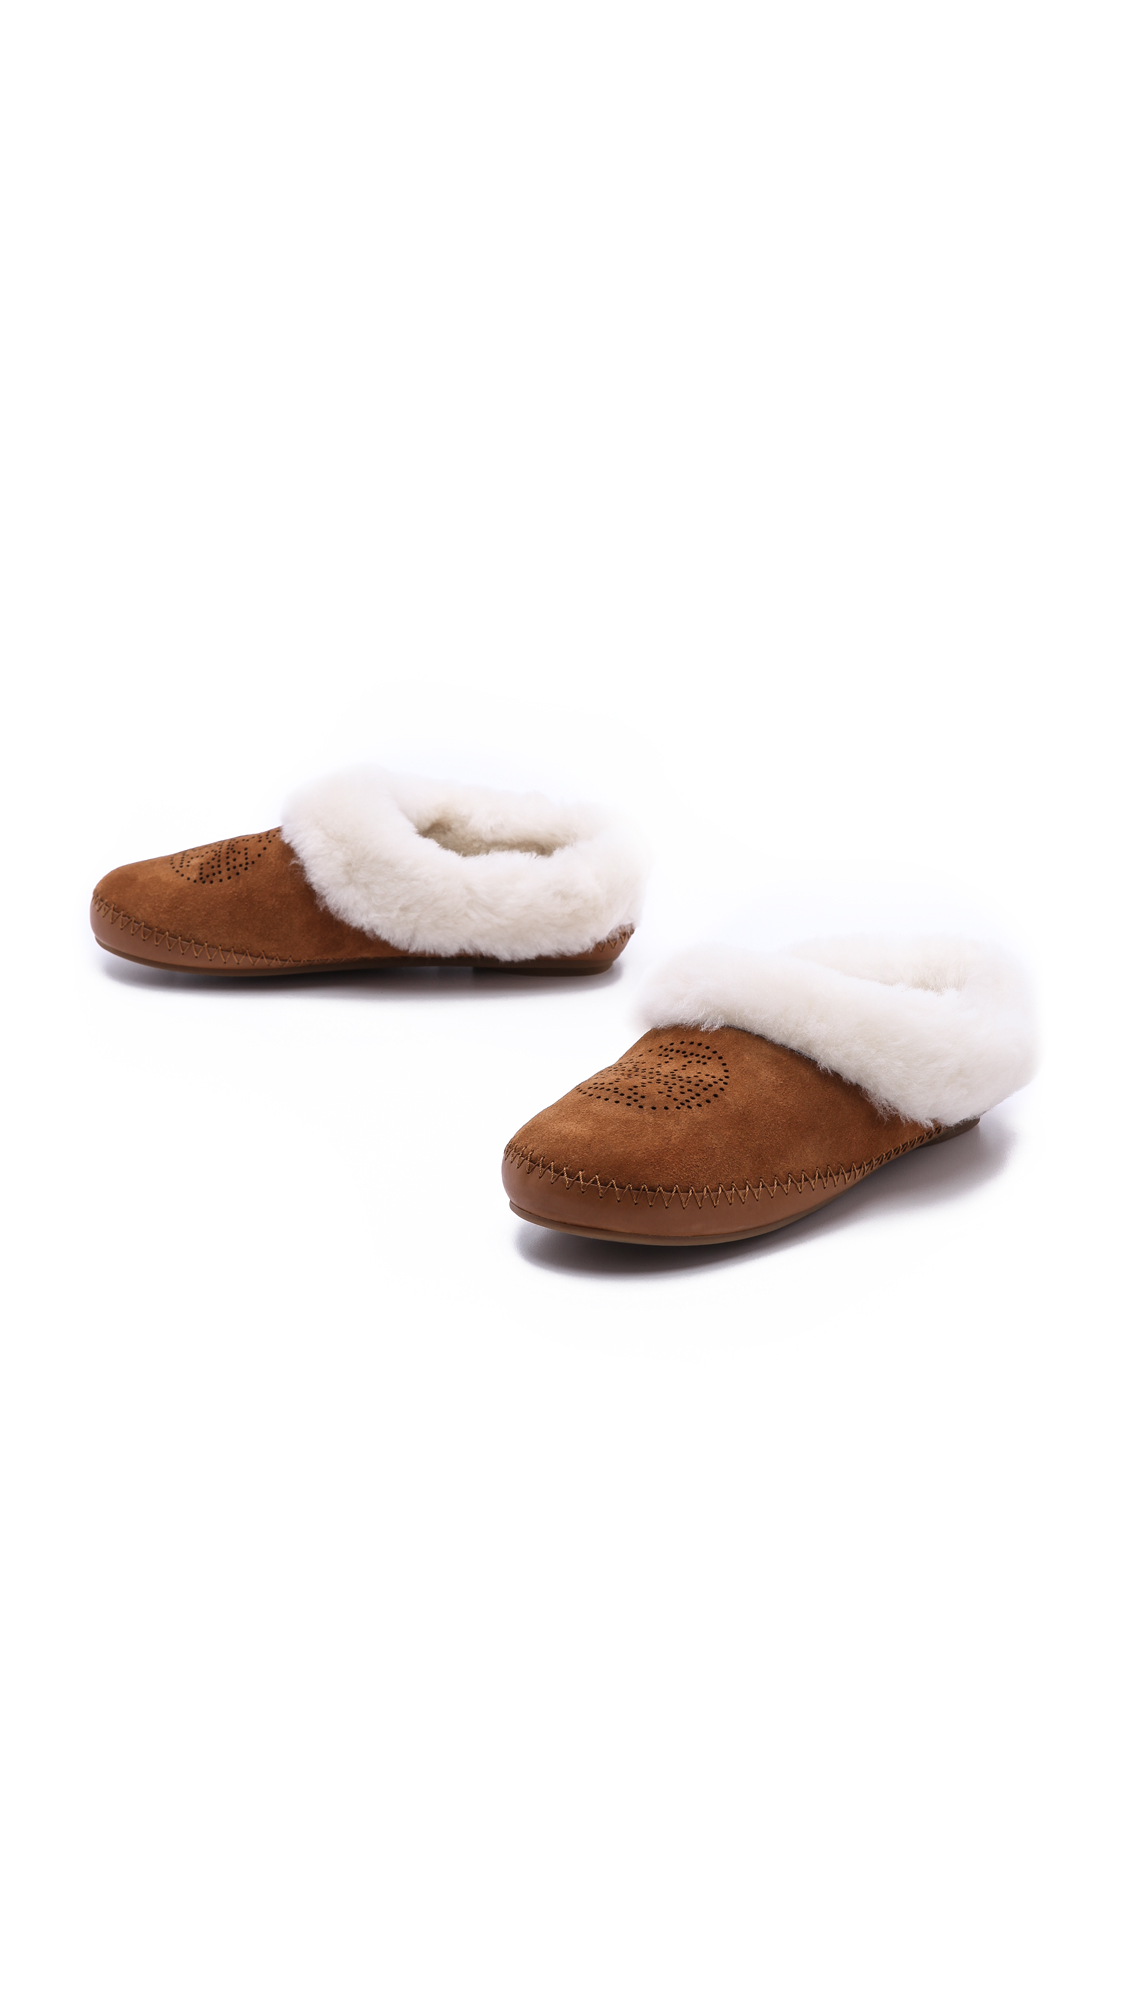 2e023cb2810b Tory Burch Coley Suede Shearling Lined Slippers